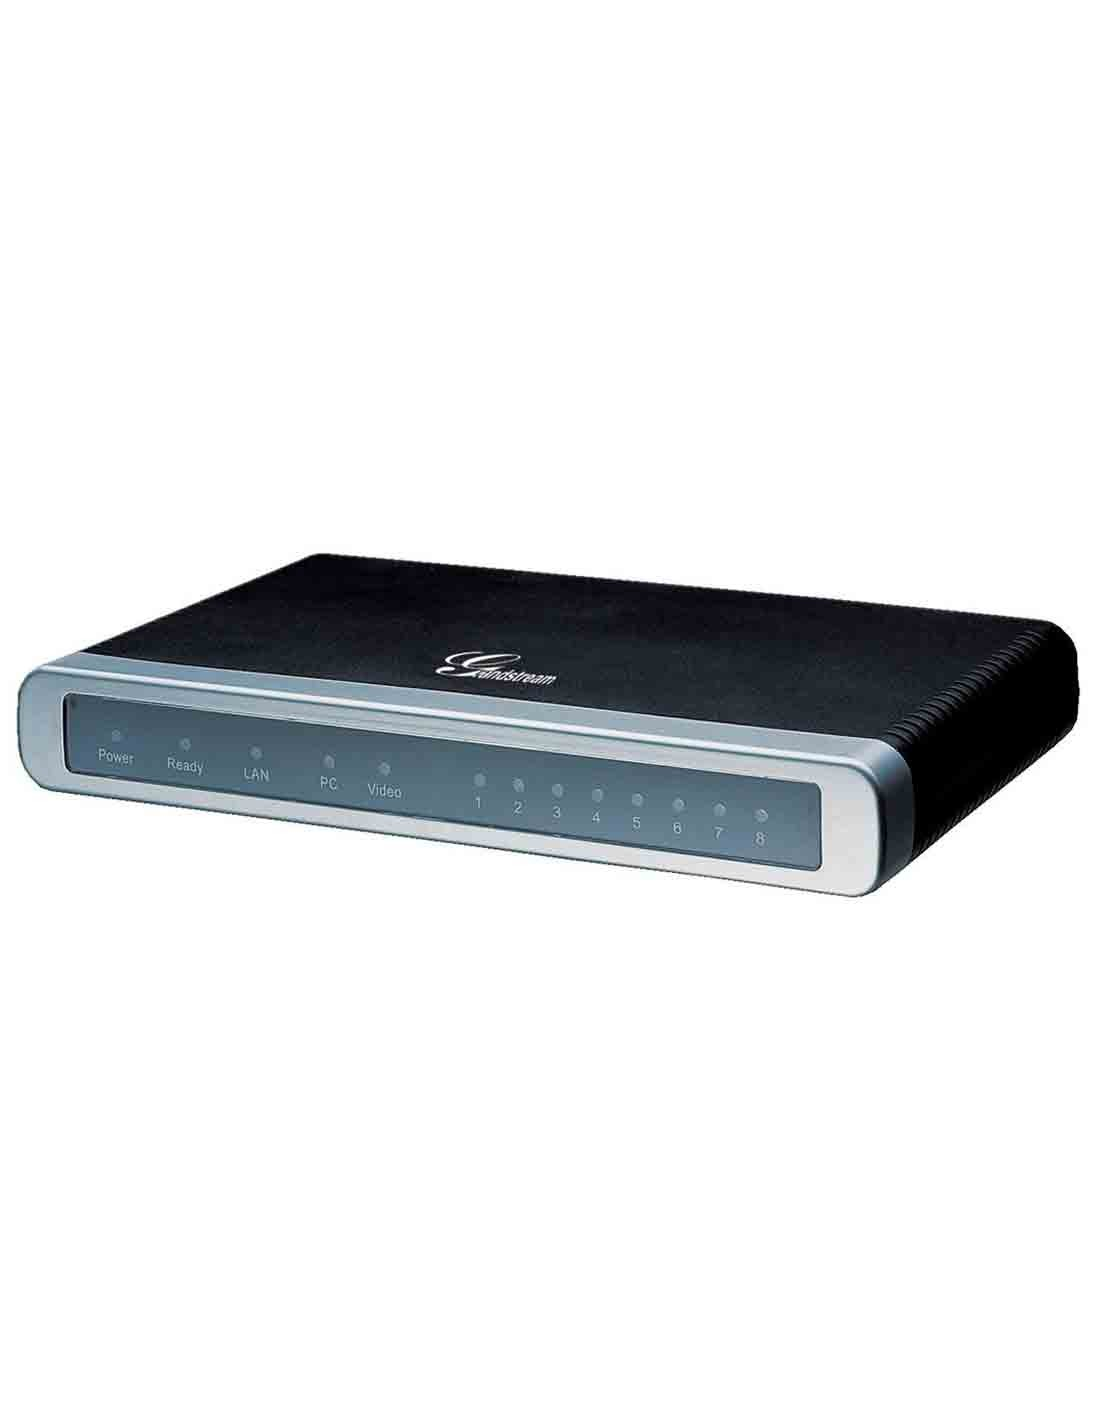 Grandstream GXW4008 8 Port FXS Gateway at a cheap price and free delivery in Dubai